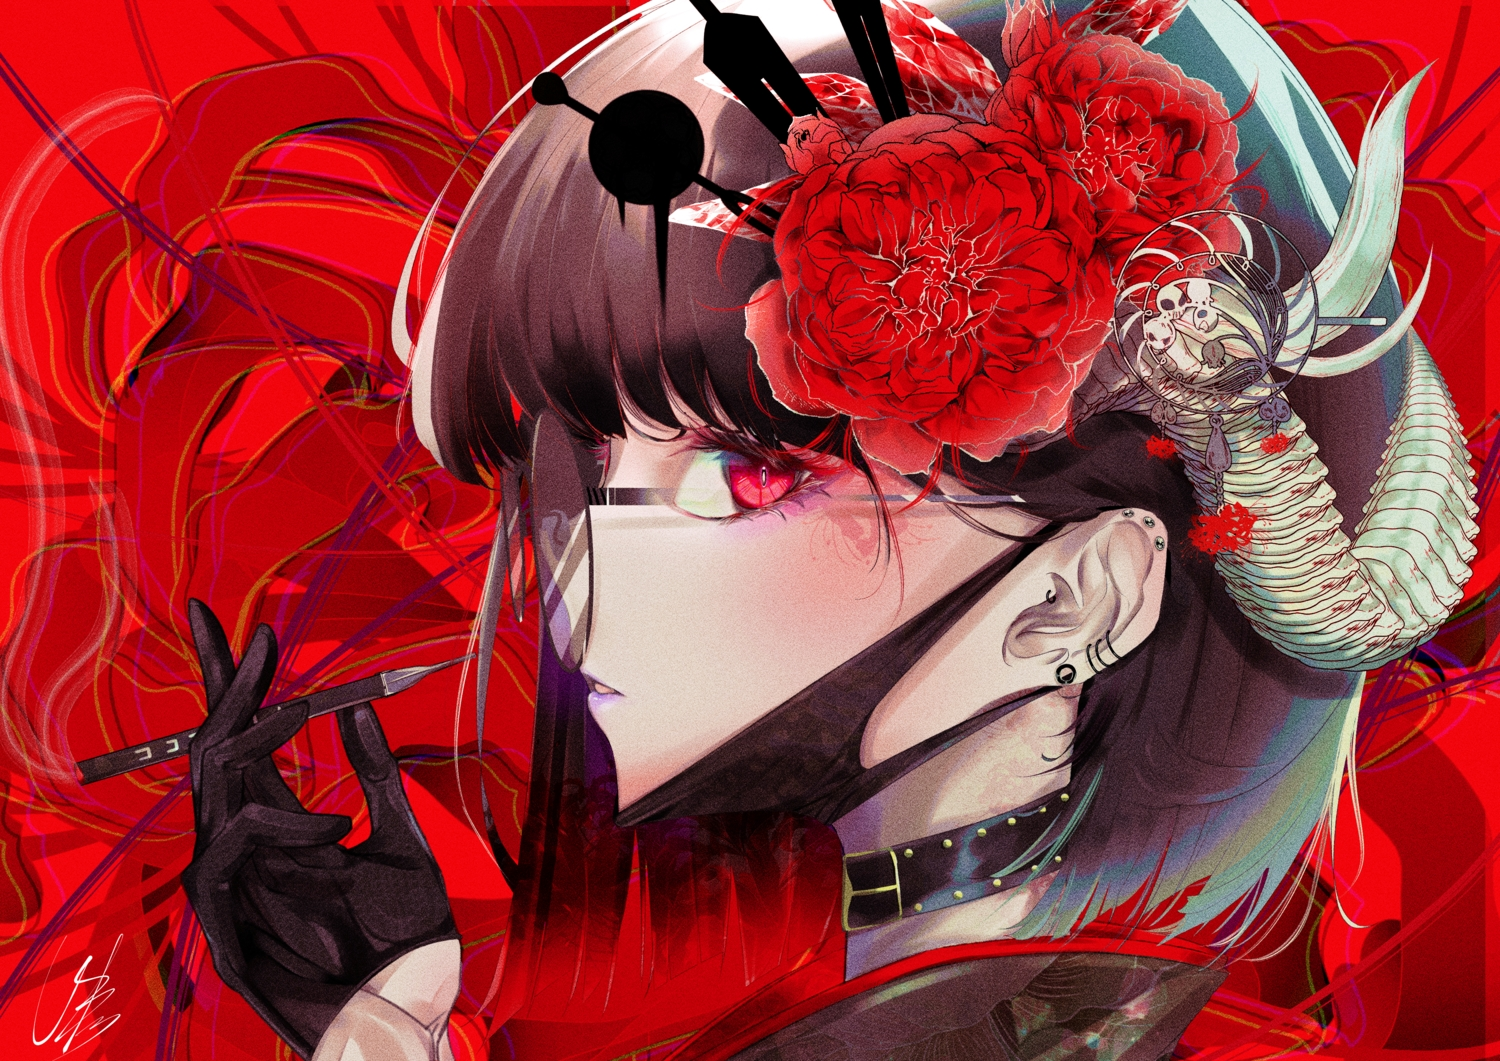 black_hair close collar flowers glasses gloves horns mask original polychromatic red red_eyes short_hair signed smoking urotare